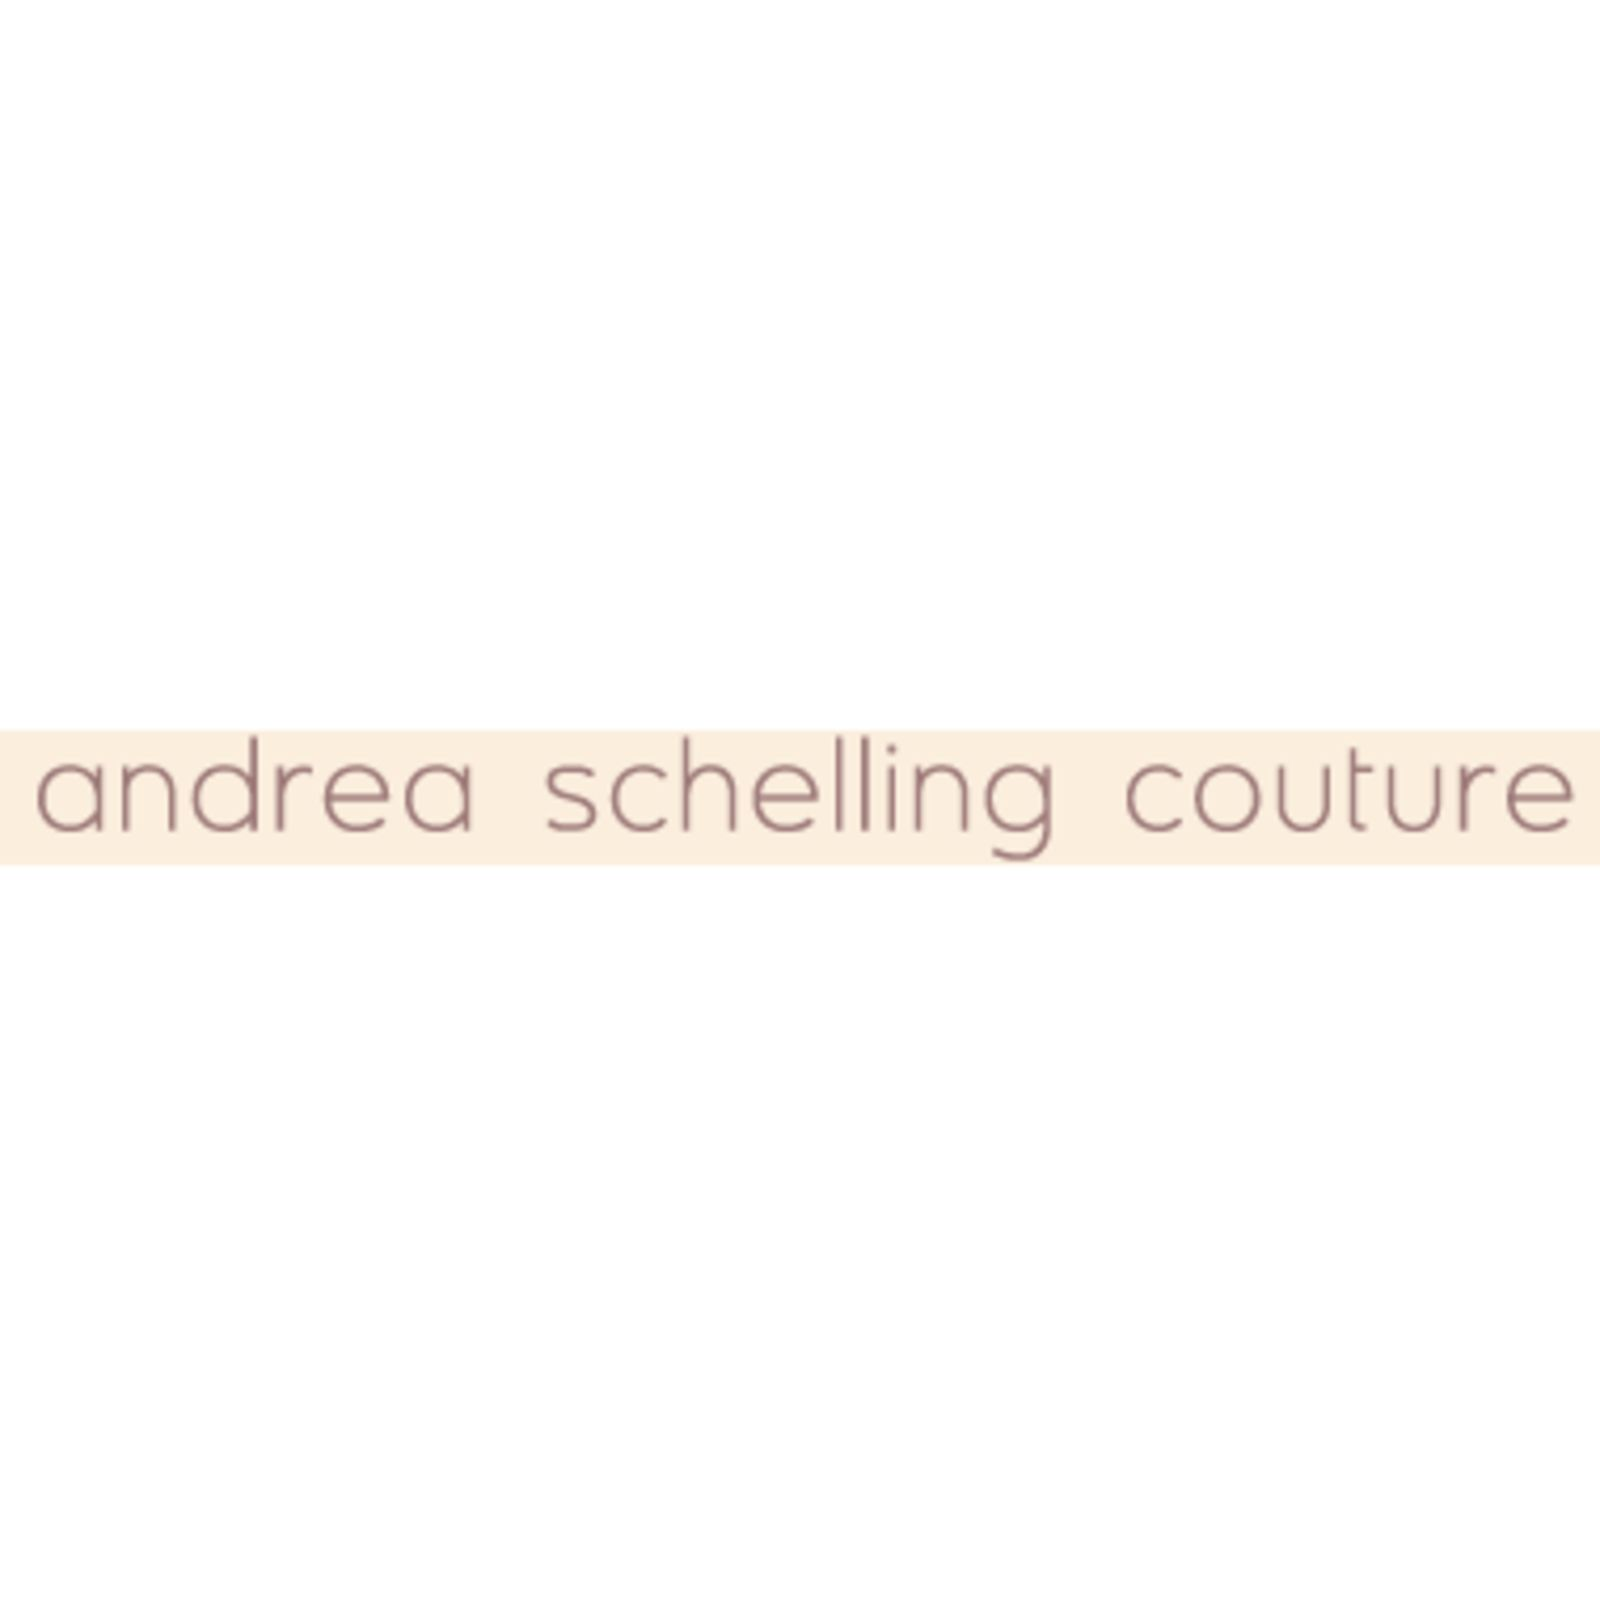 Andrea Schelling Couture